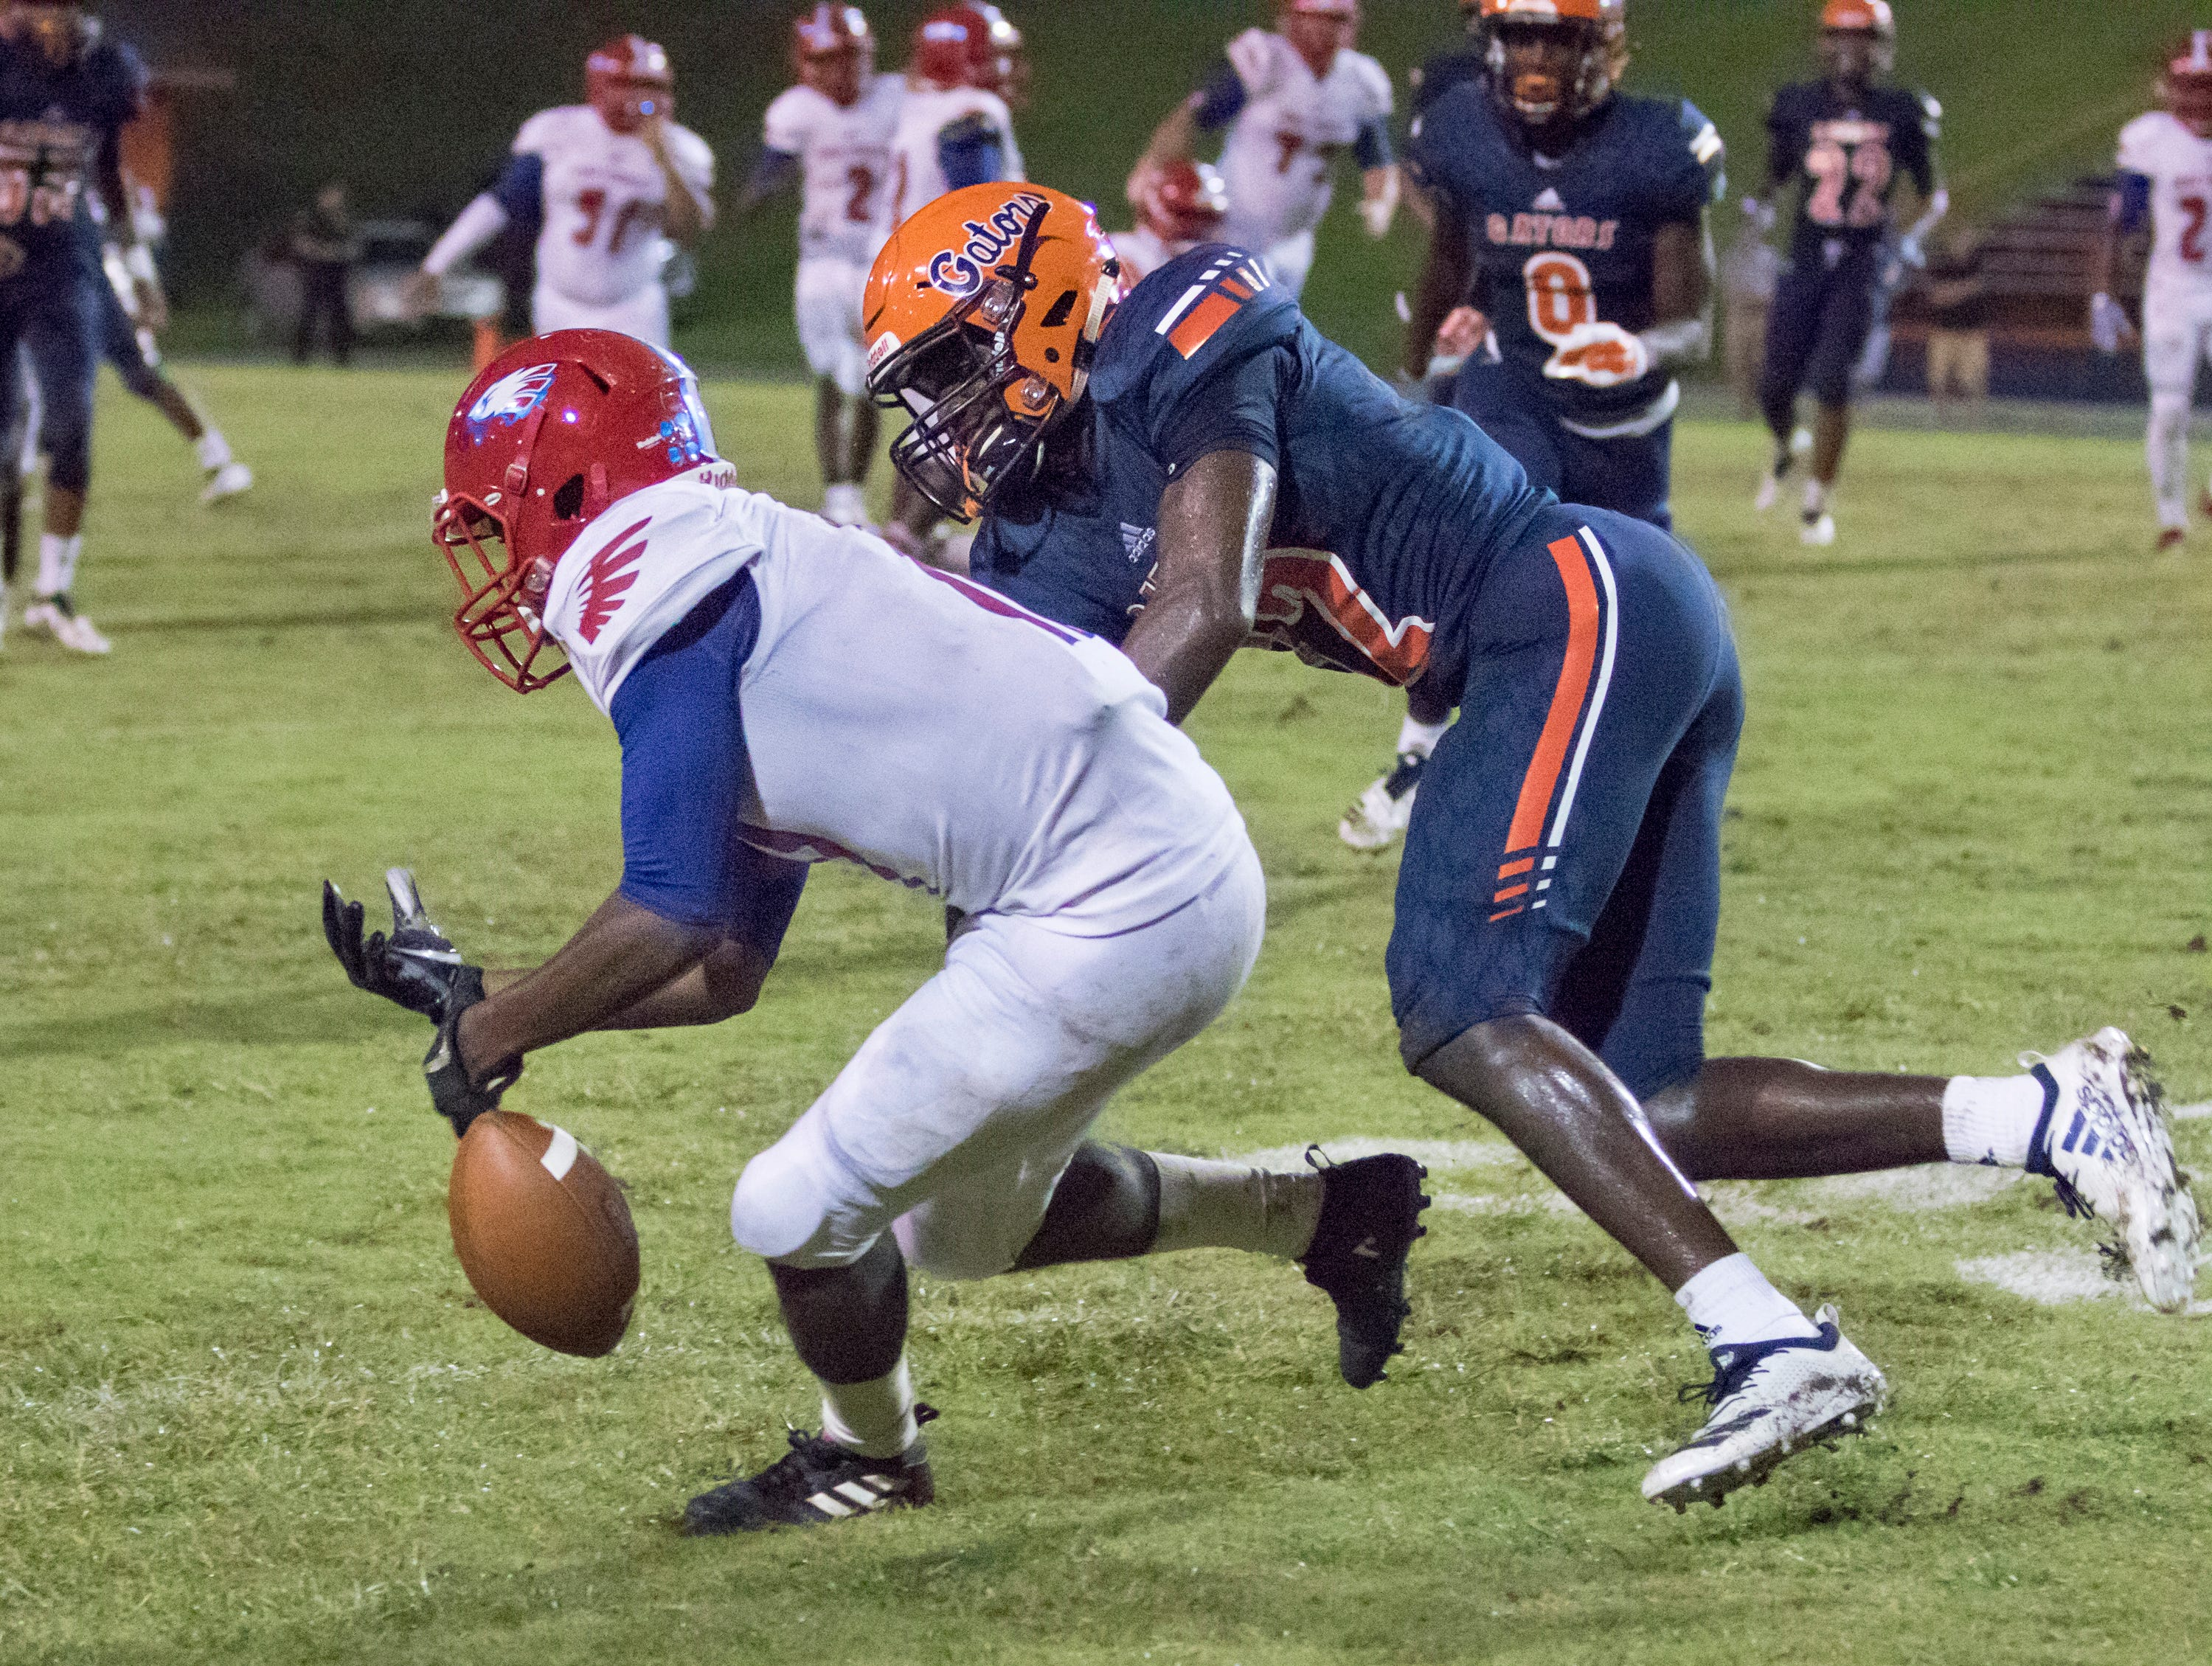 Tray Mason (11) drops a pass during the Pine Forest vs Escambia football game at Escambia High School in Pensacola on Friday, September 28, 2018.